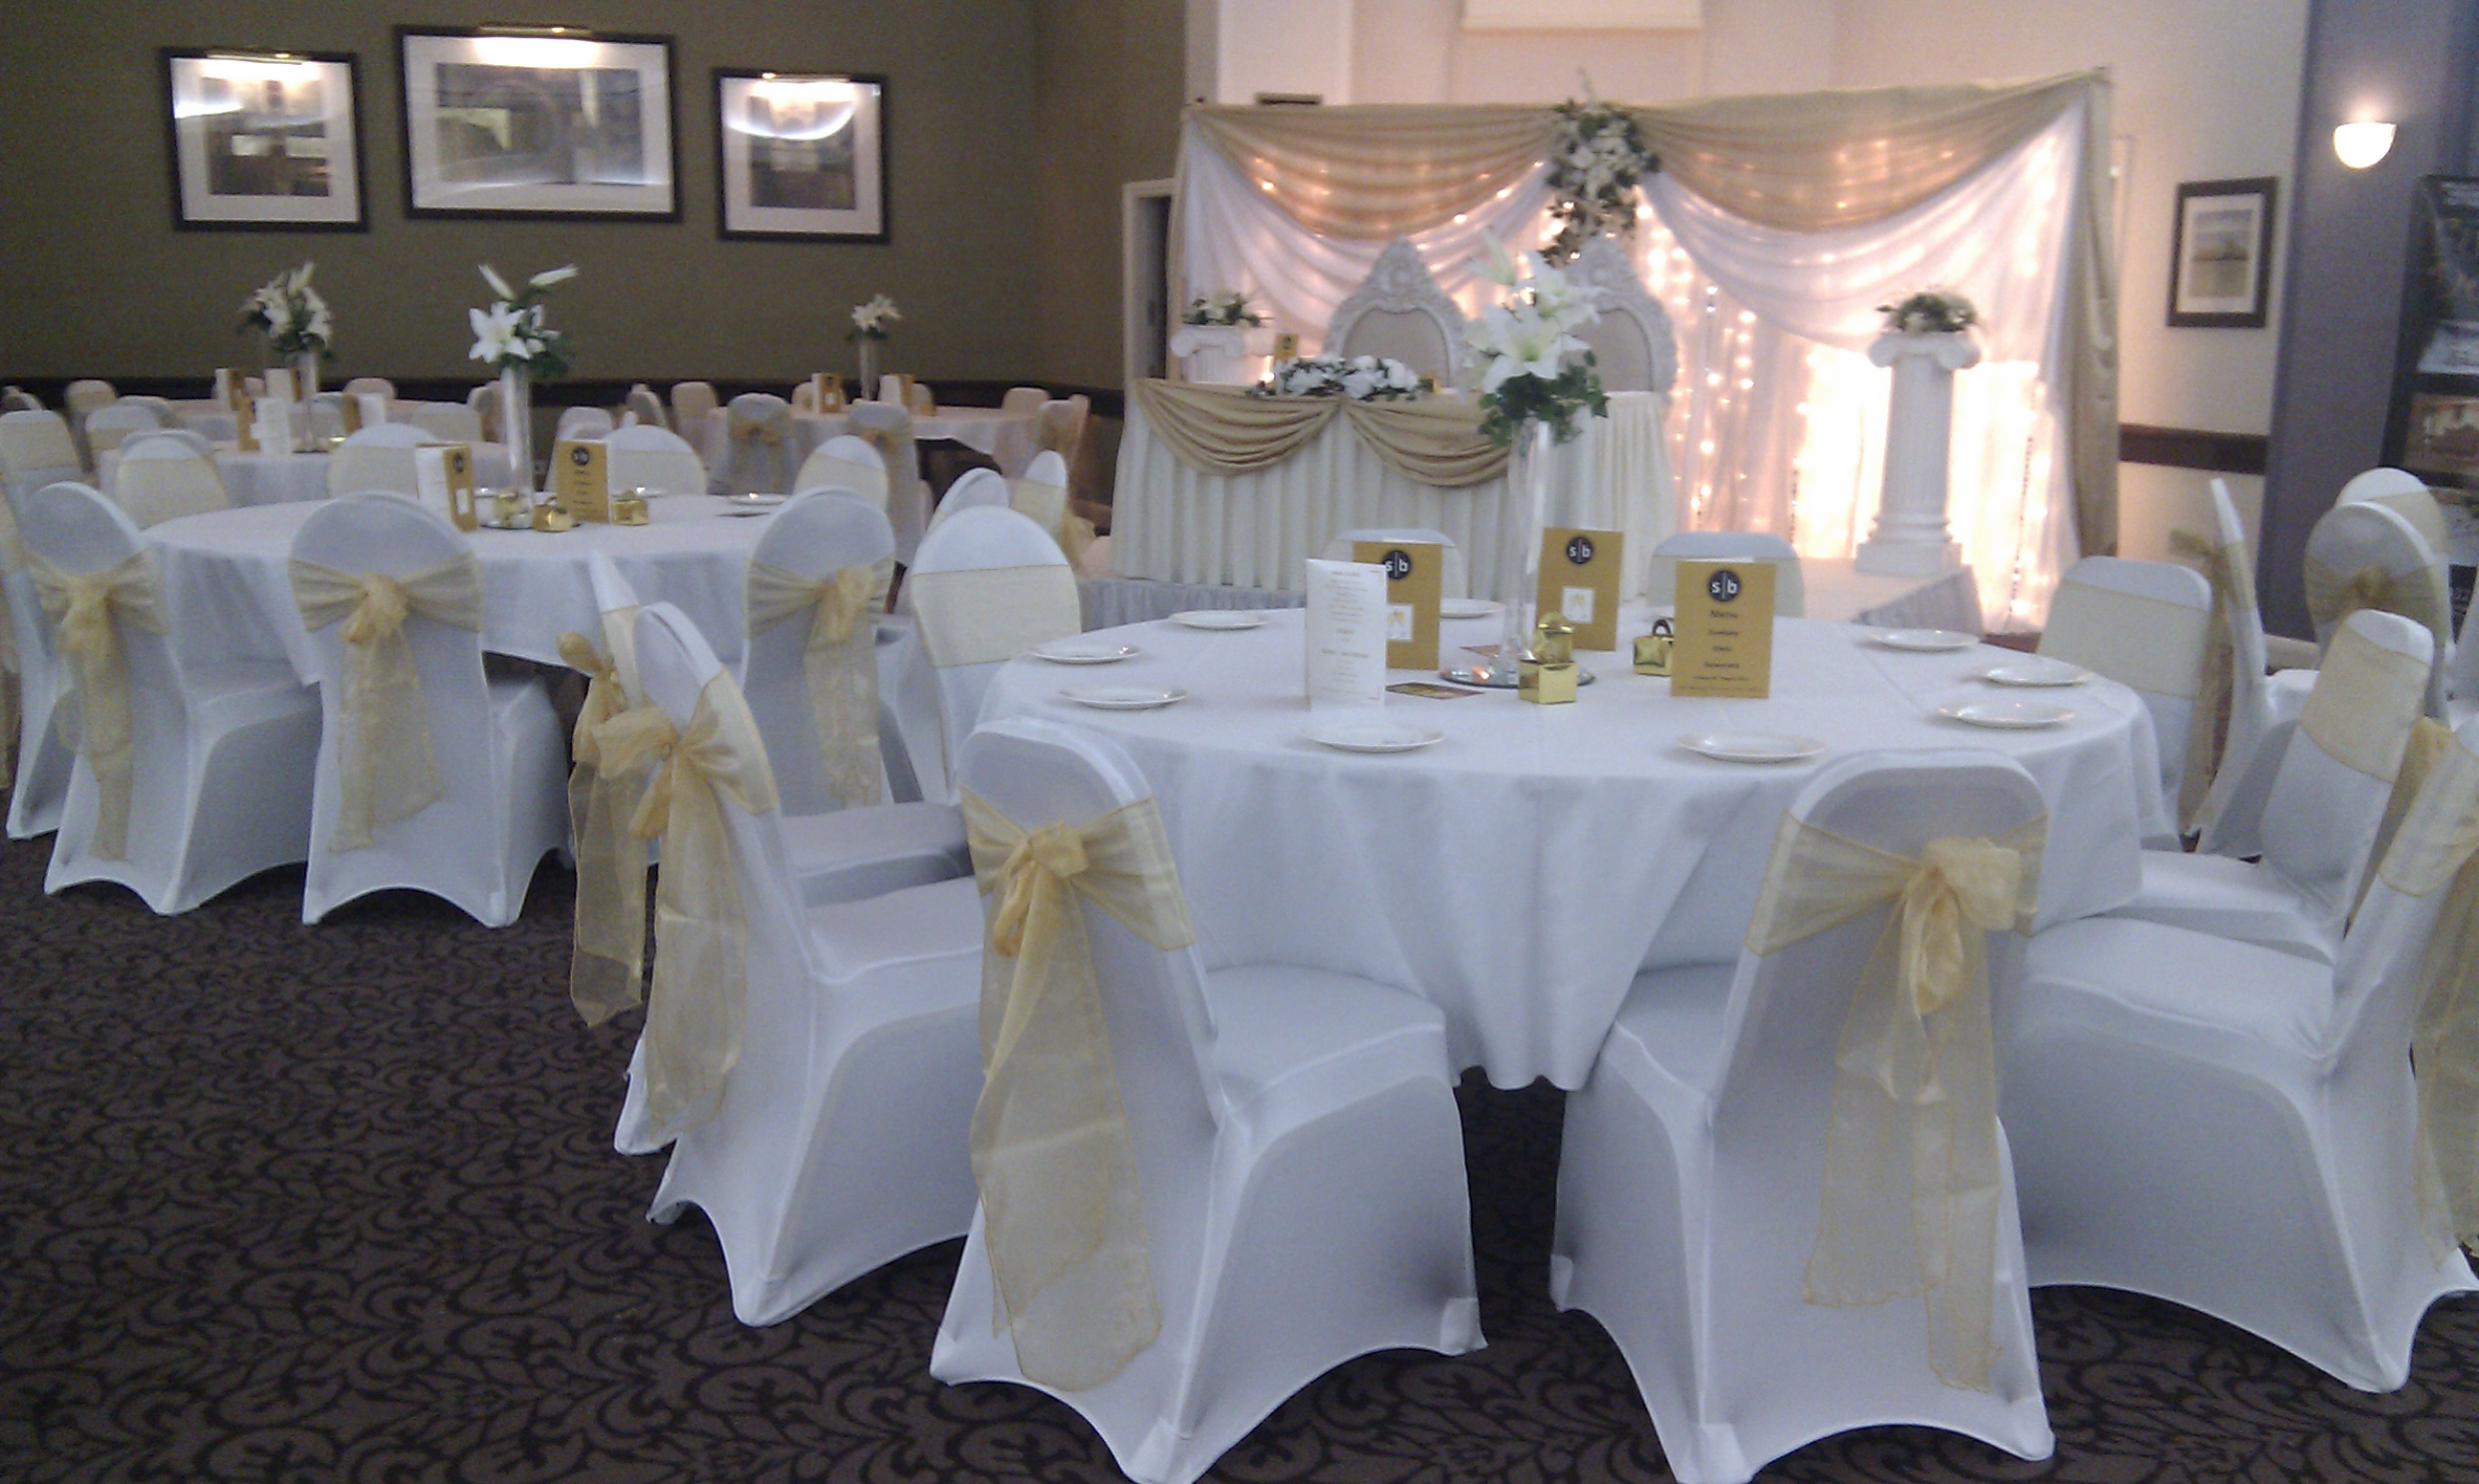 used wedding chair covers for sale uk baby room fusion decor